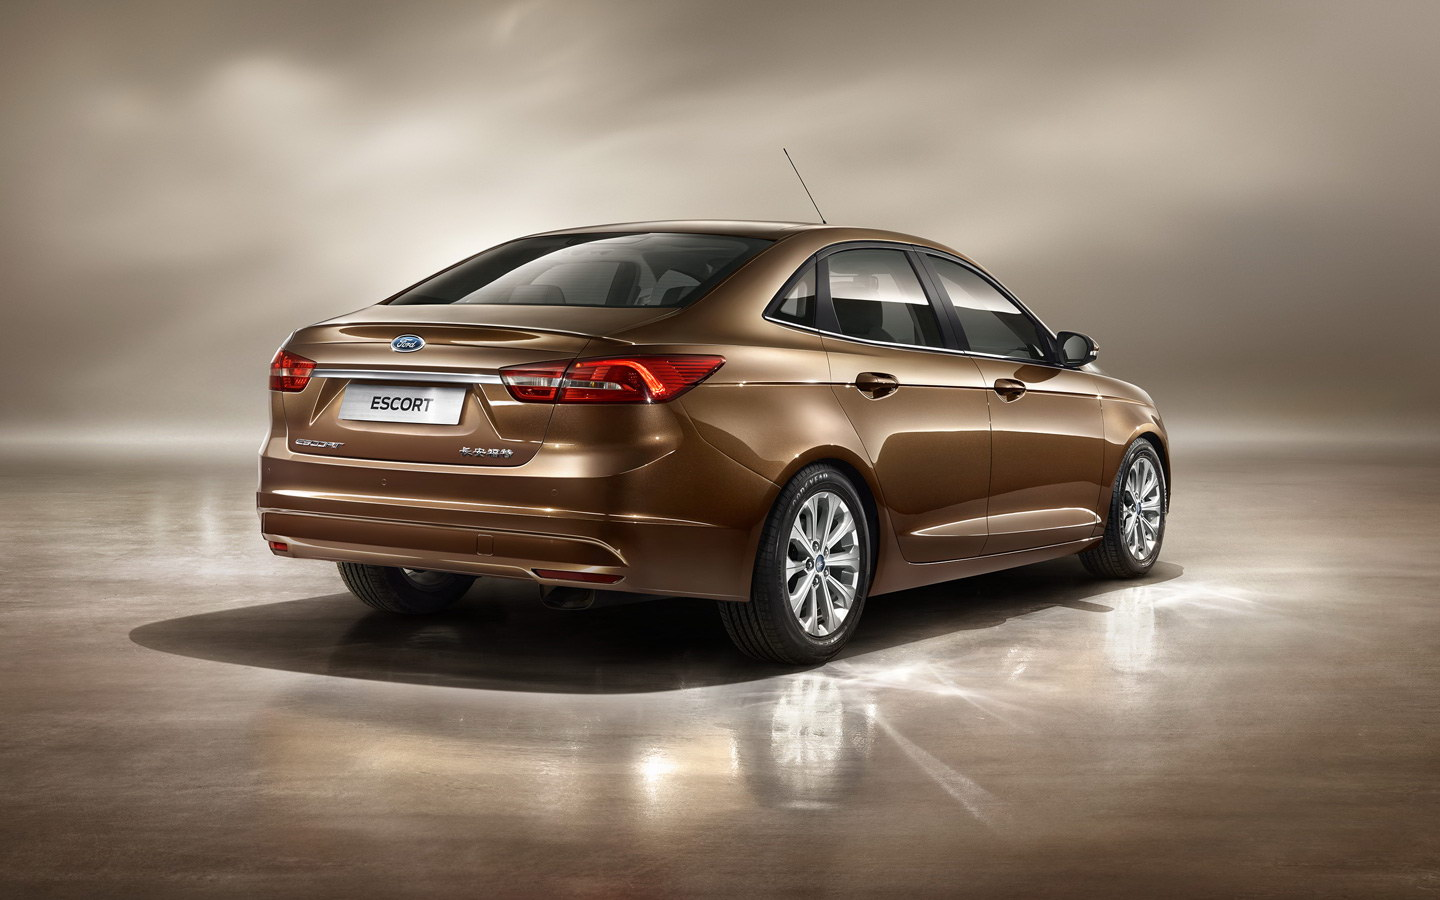 2014 Ford Focus Sedan >> 2015 Ford Escort to Debut at Guangzhou Auto Show - autoevolution